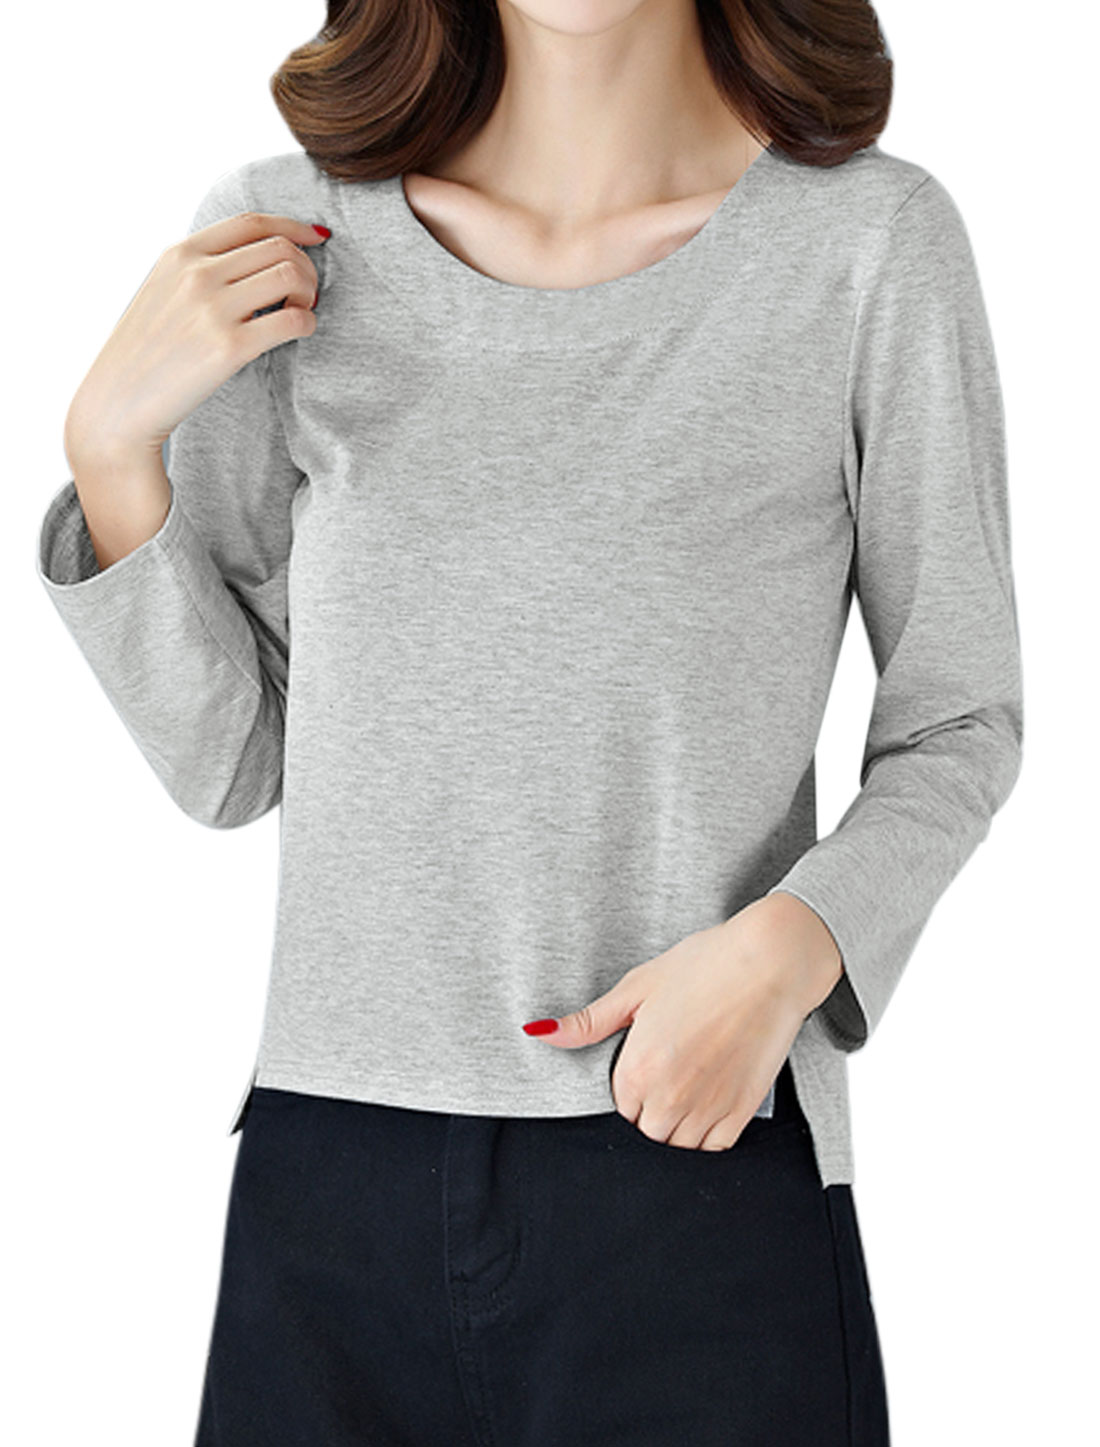 Women Round Neck Long Sleeves Split Sides T-shirt Gray S